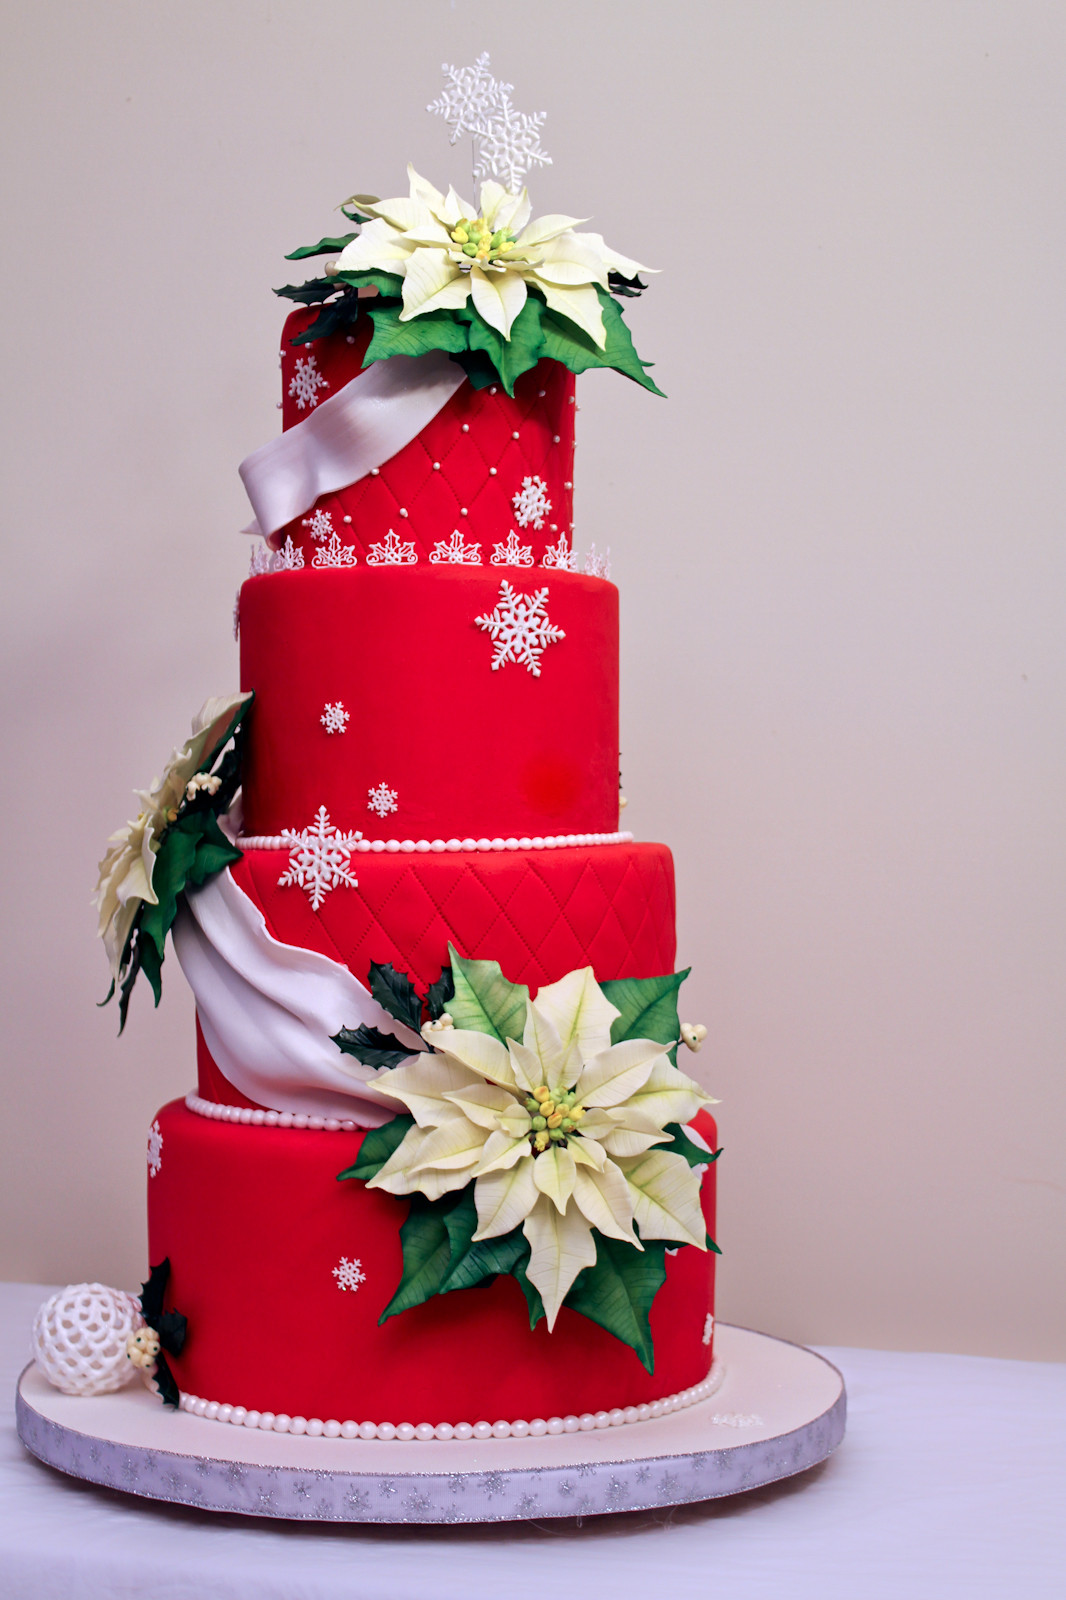 Christmas Holiday Cakes  The Cake Engineer Holiday Poinsettia Cake